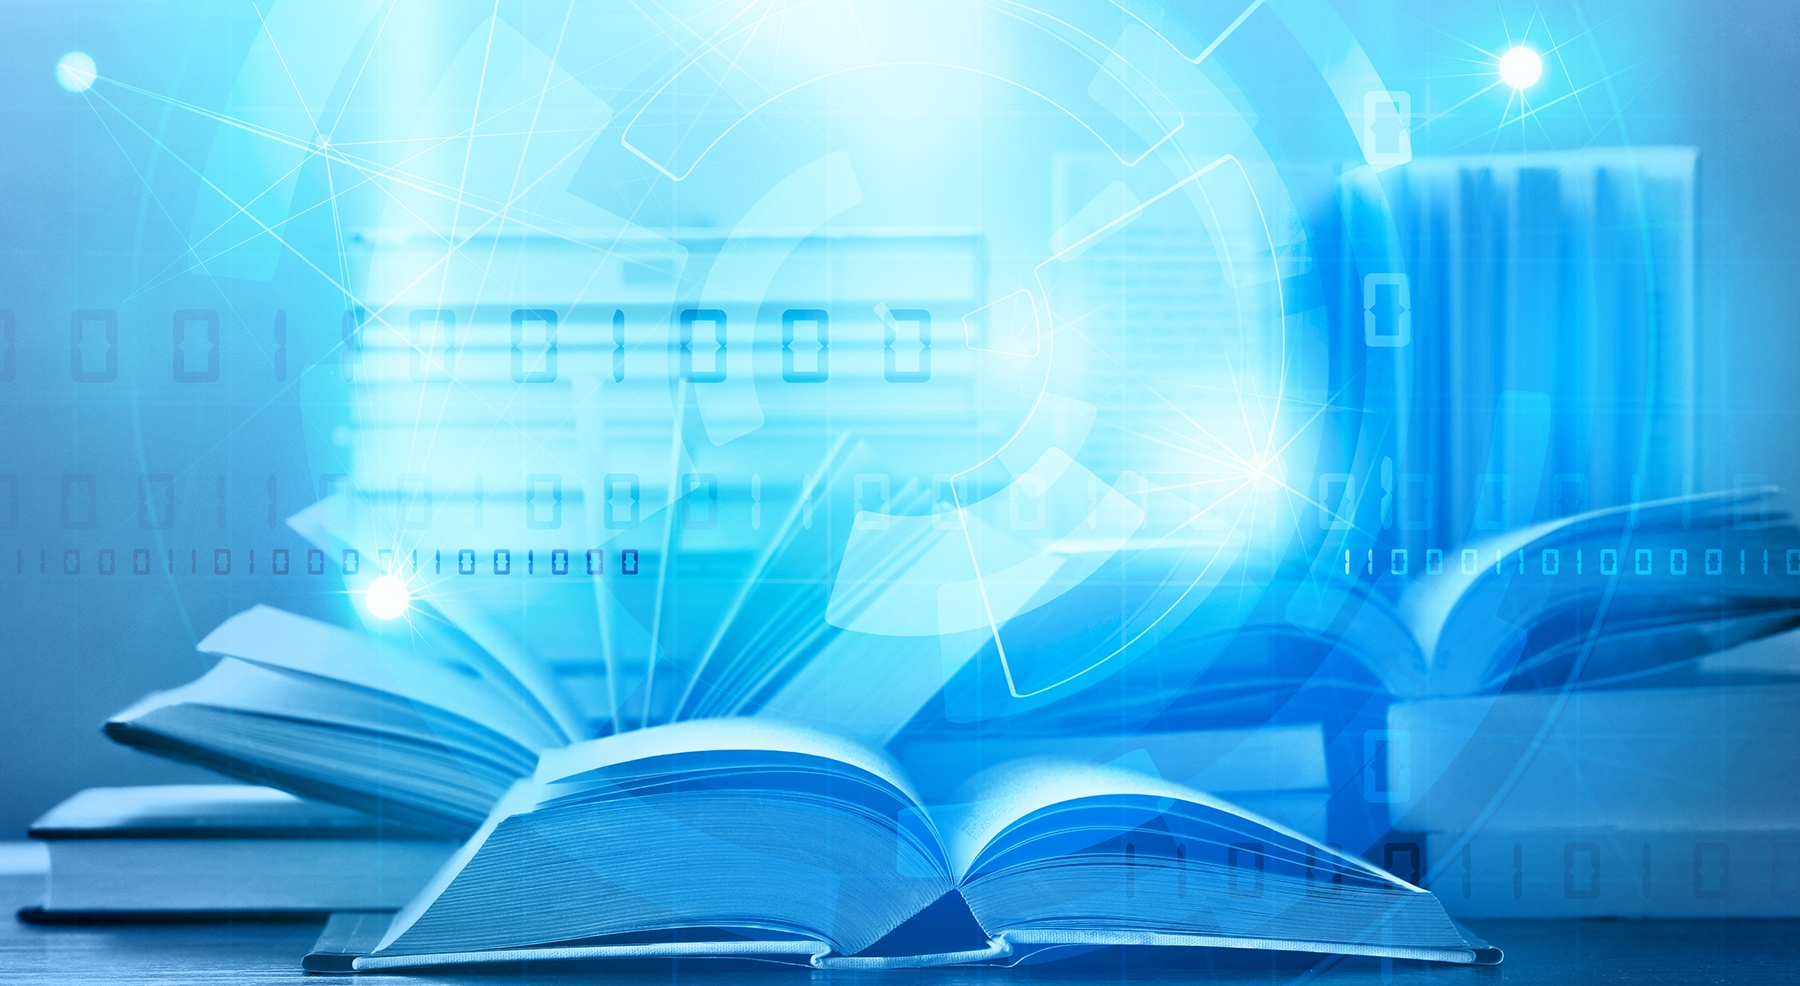 Essential Bookmarks - Finding Educational Resources on the Web